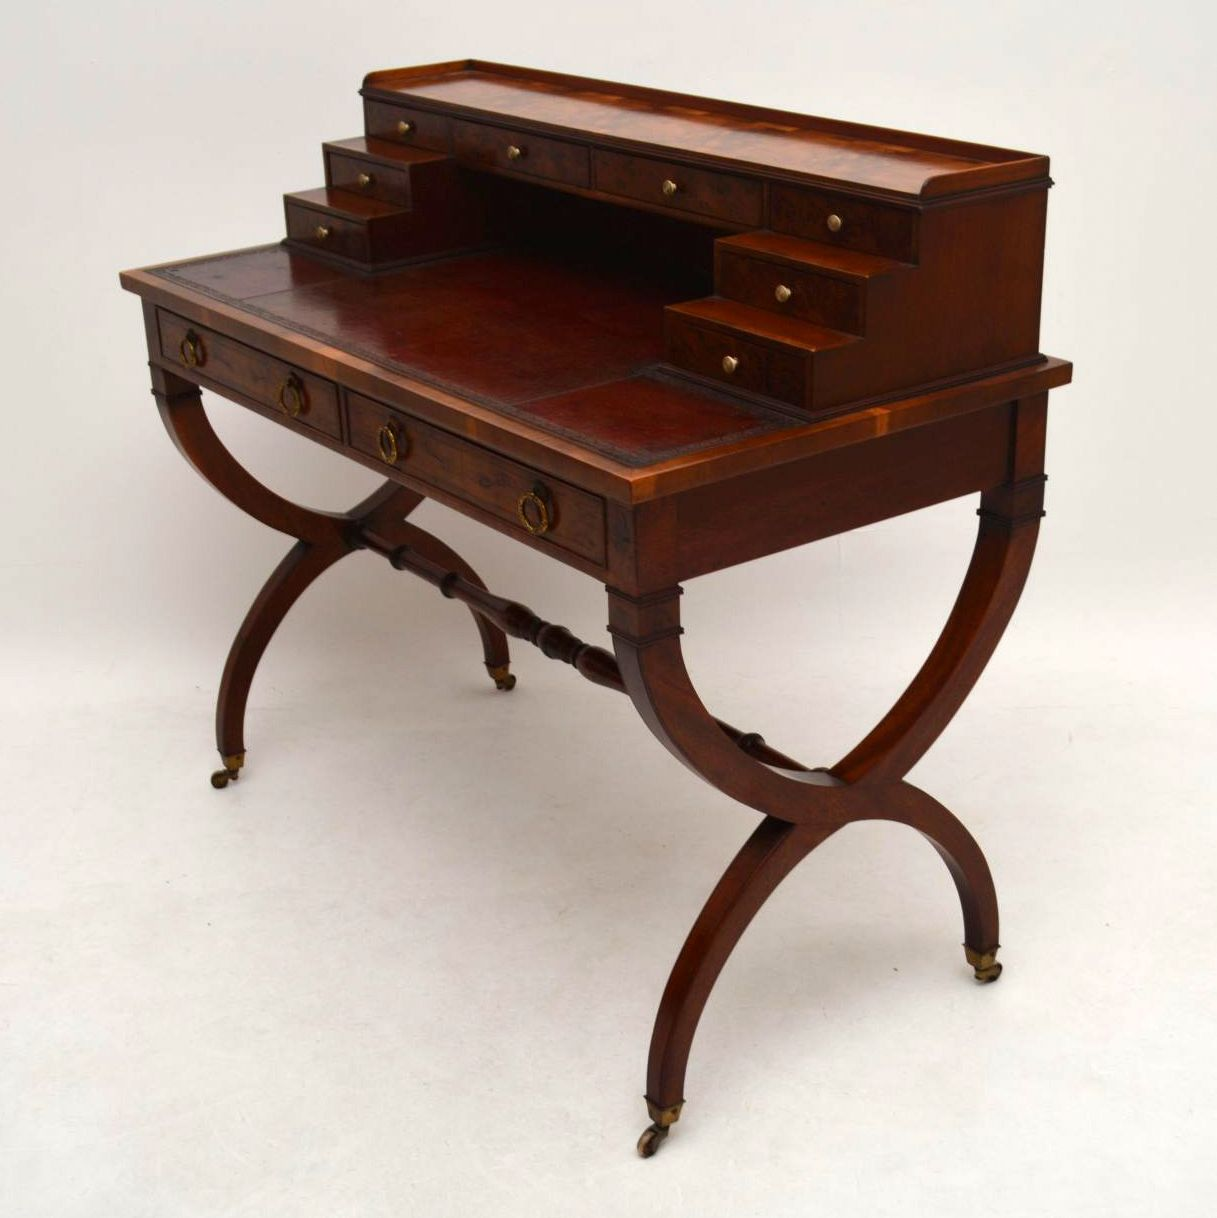 Antique Yew Wood Leather Top Writing Table Desk  Interior. How To Fix Roll Top Desk. Refurbished Tables. Stackable Side Tables. Interview Questions For Front Desk Position. Help Desk Jobs. Mid Century Modern Glass Coffee Table. Desk Chair Back Pain. Clear Acrylic Drawer Pulls